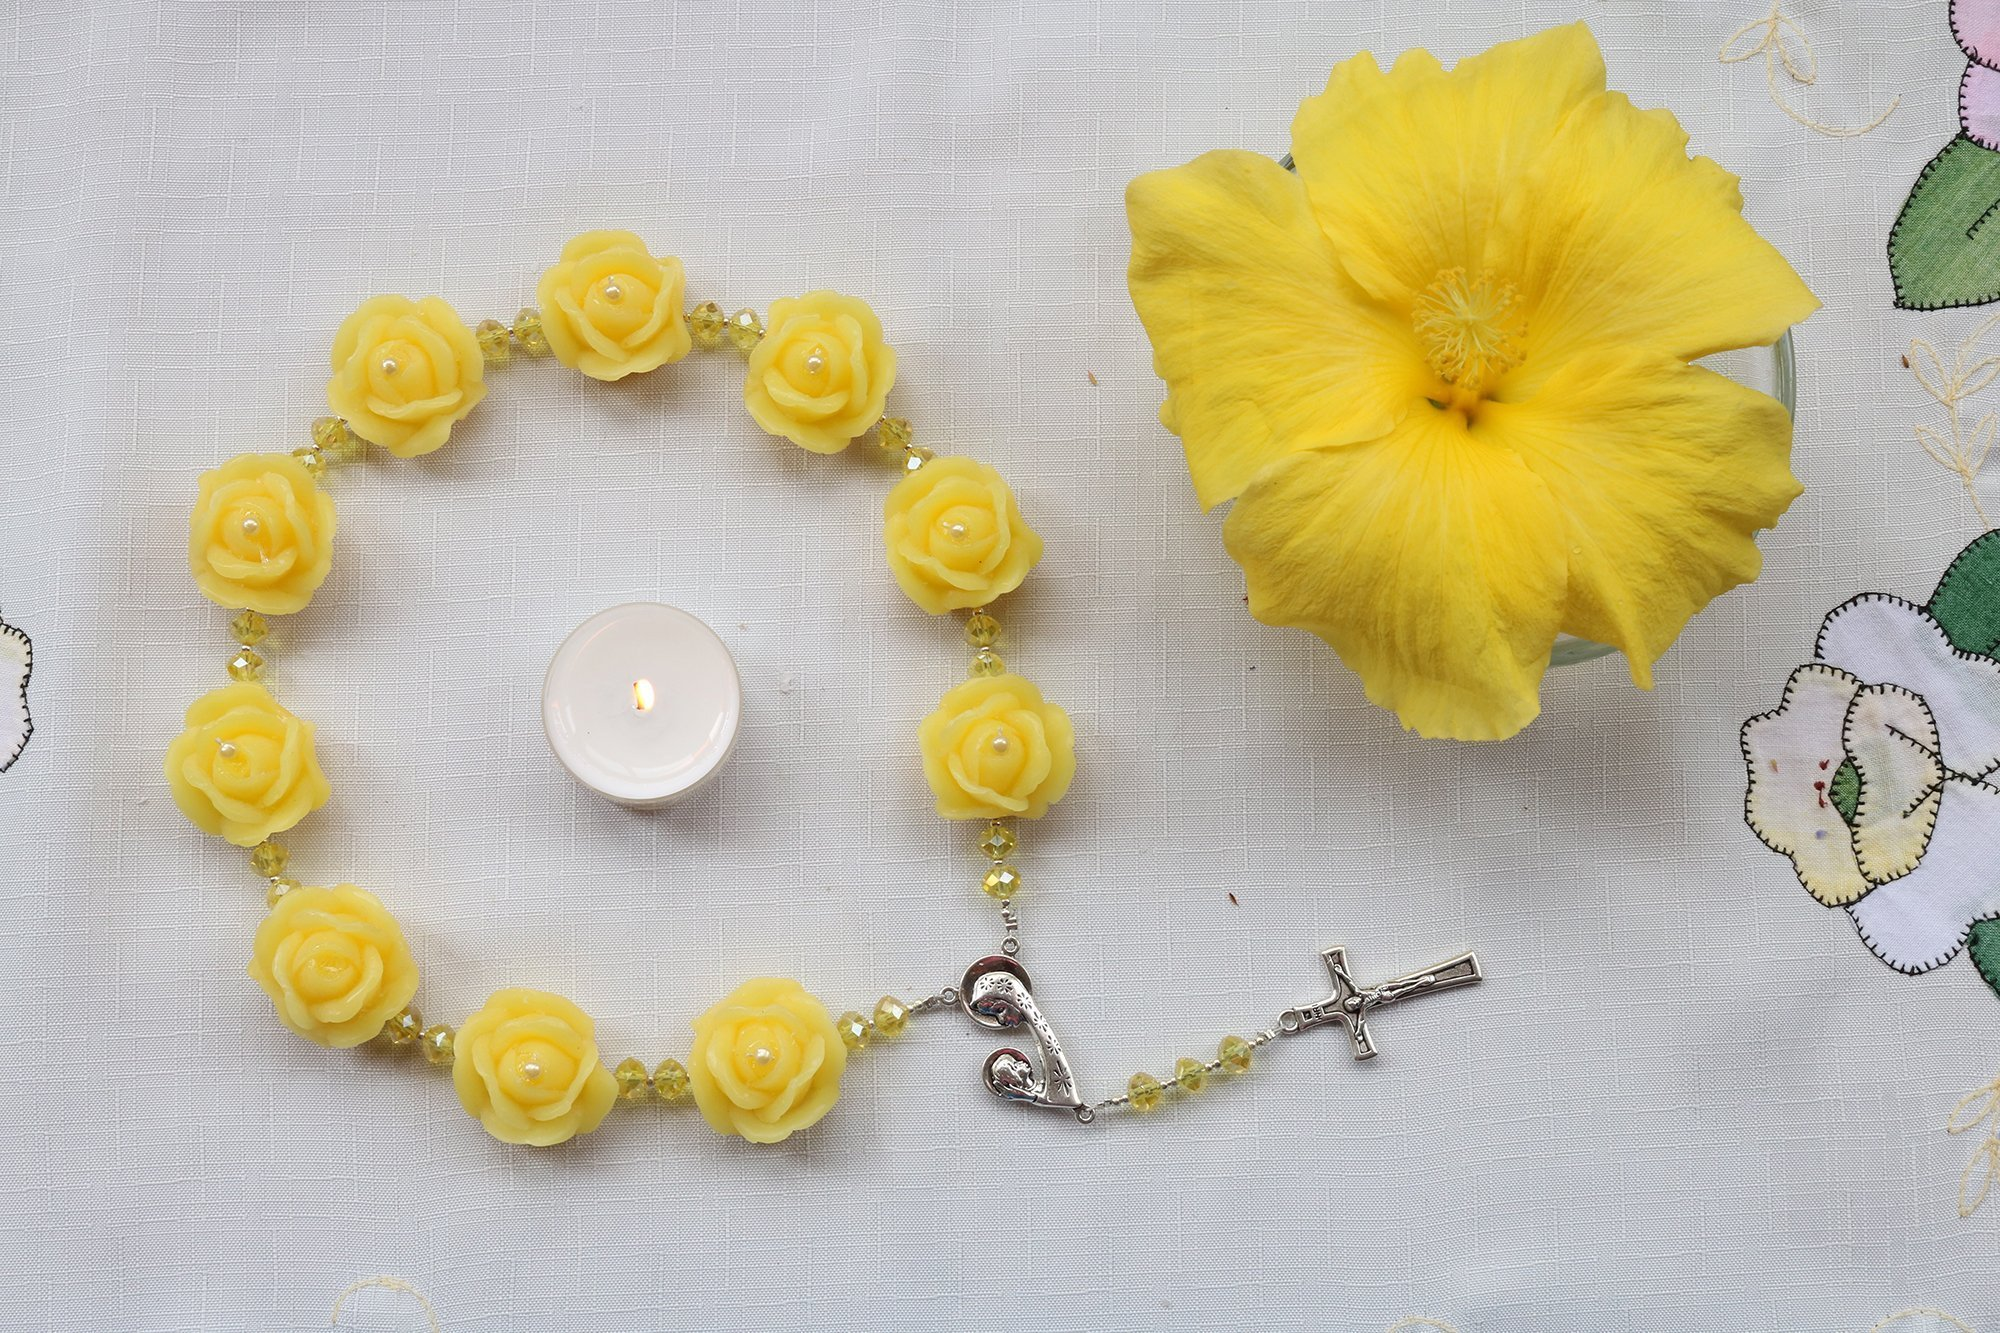 Catholic Rosary Altar Religious Gifts Home Decor Wax Handmade 1.2 inch Roses Beads Infused Essential Oils /R100YELLOW